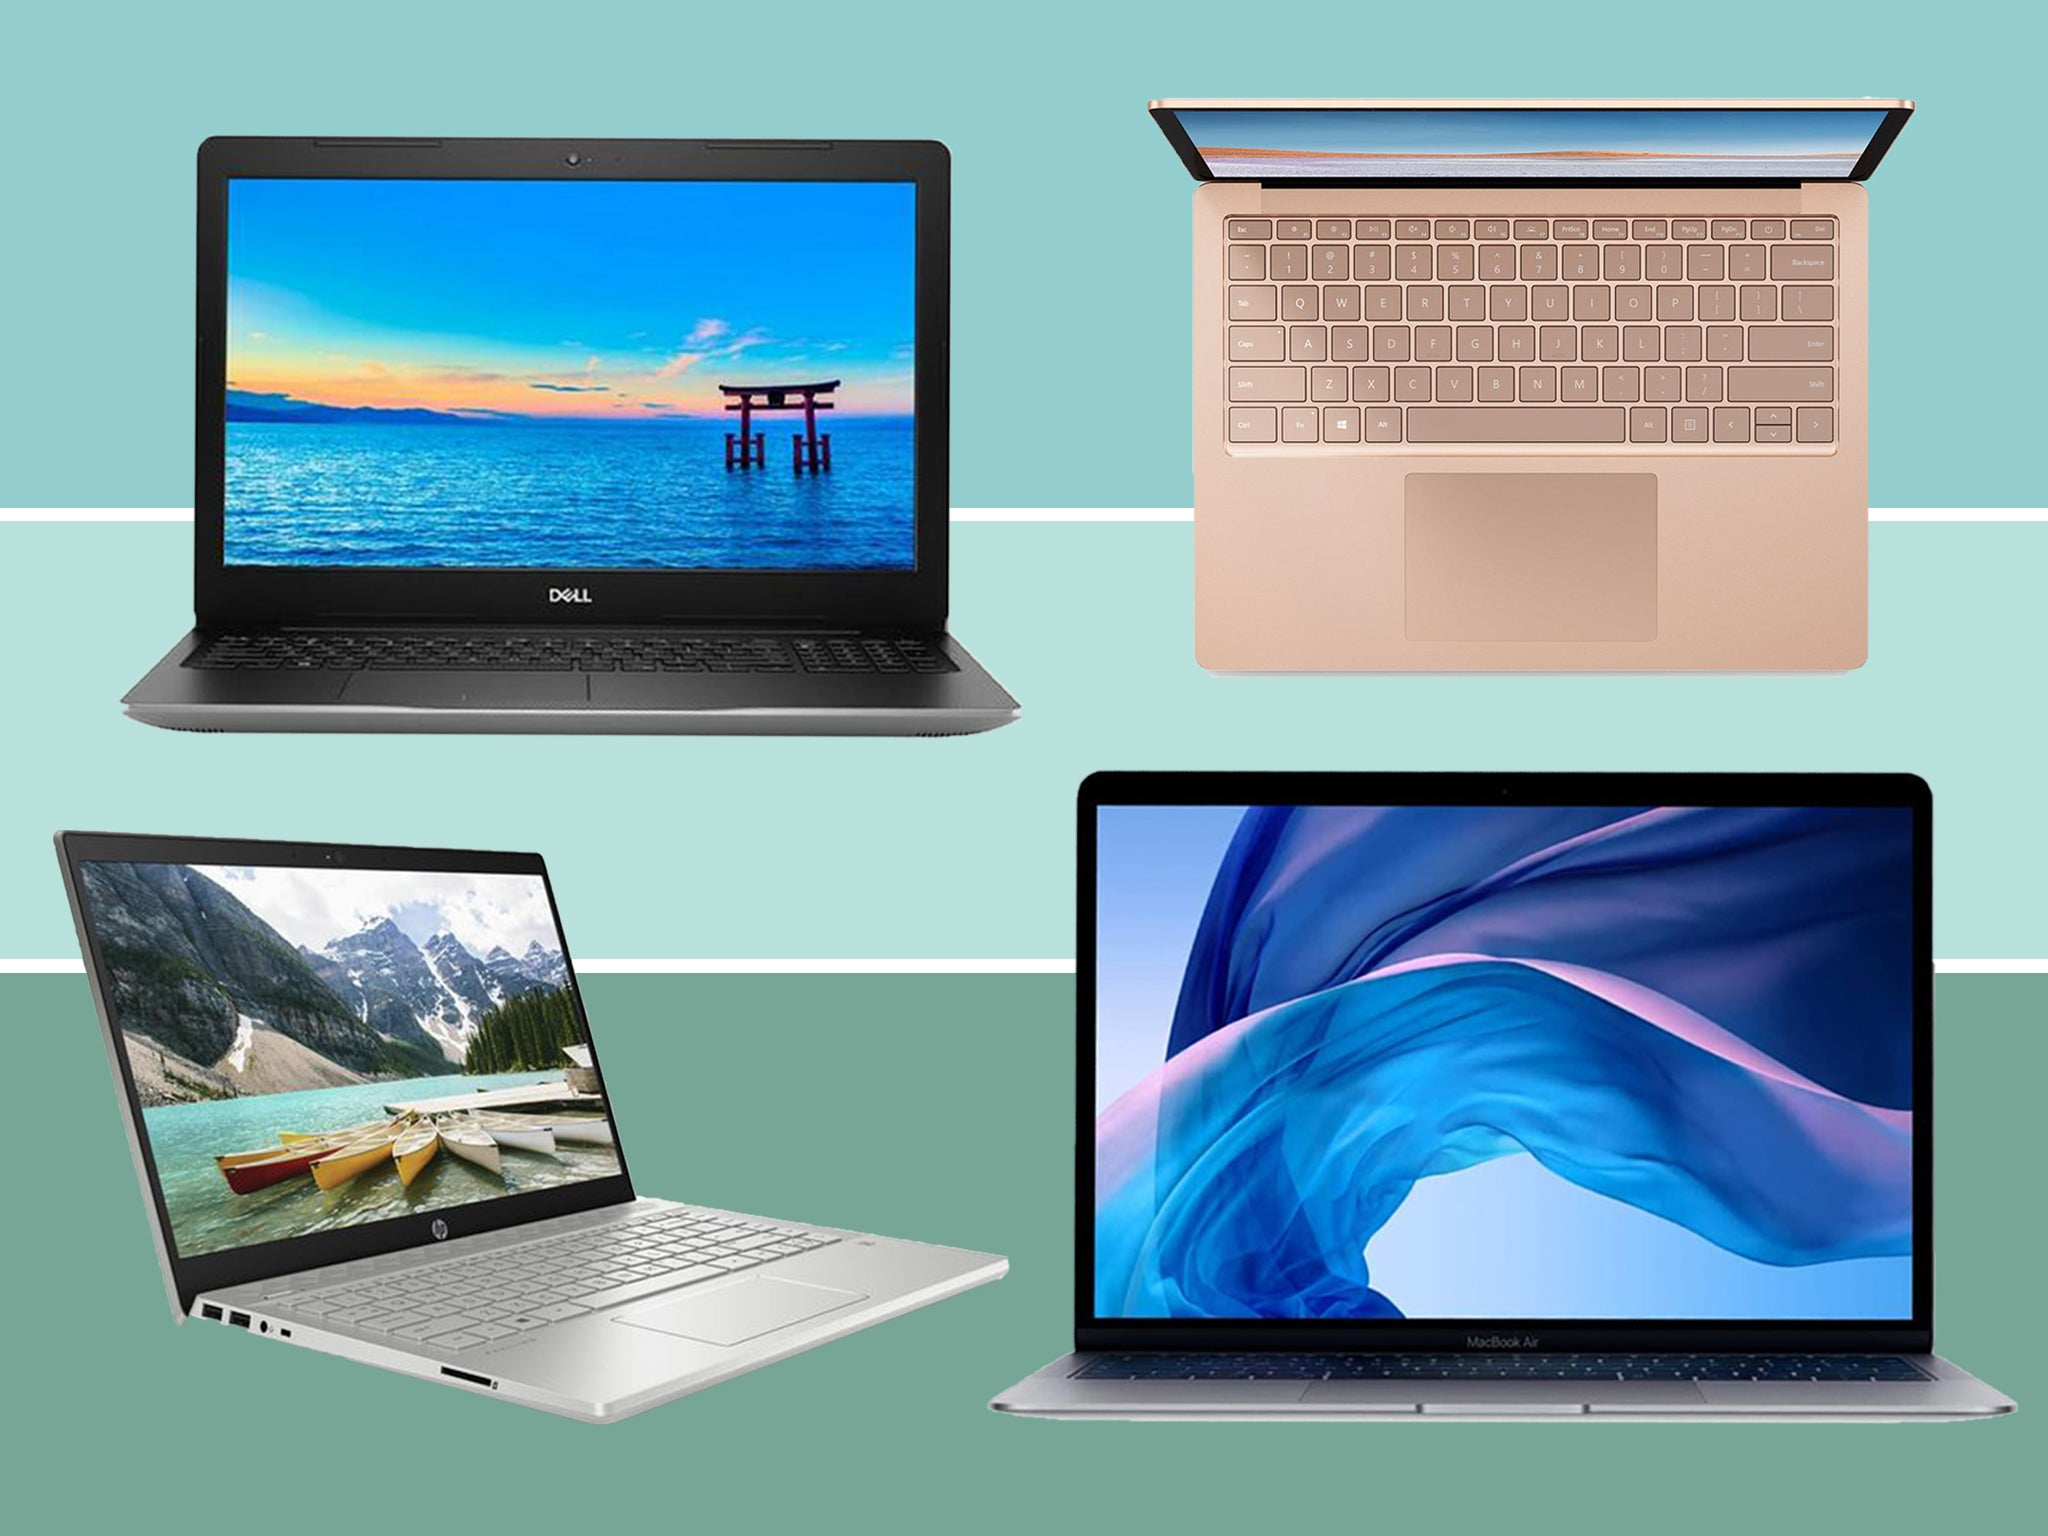 Best Black Friday Laptop Deals 2020 Offers On Apple Samsung And Lenovo Products The Independent